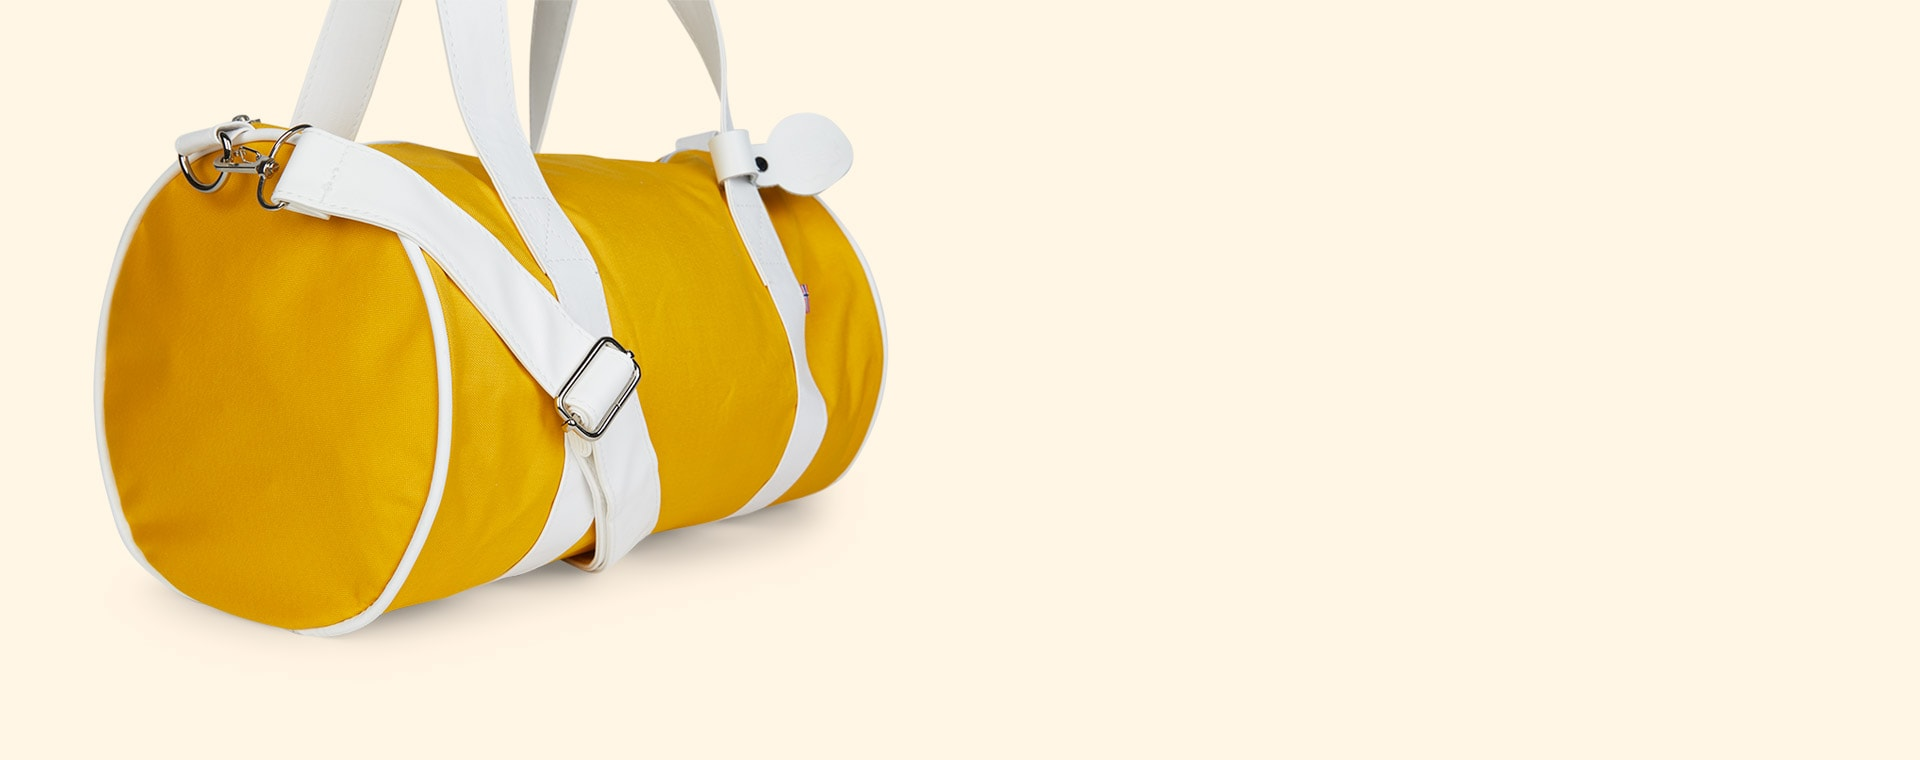 Yellow Blafre Holdall Bag